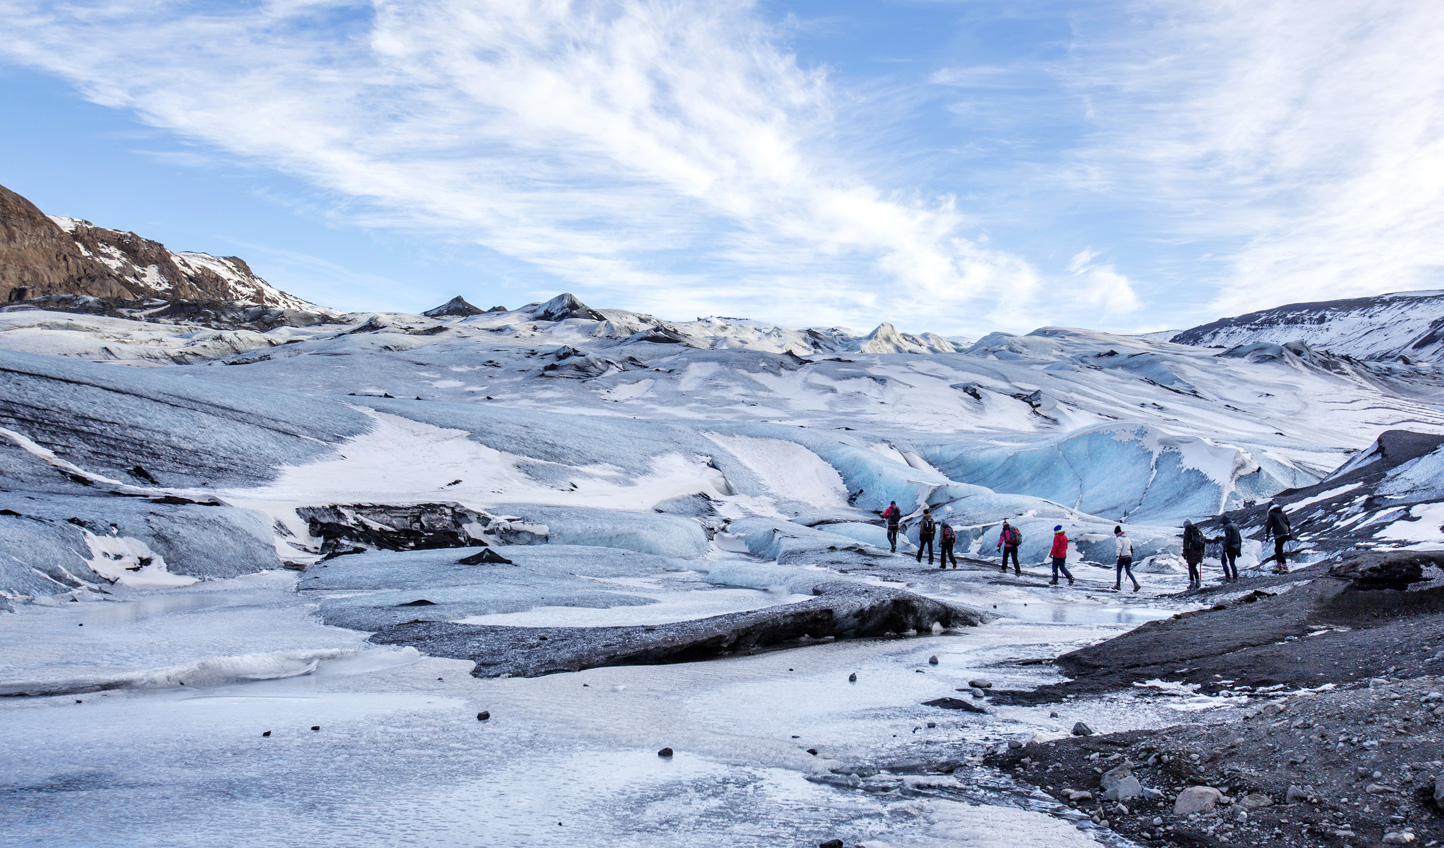 End your trip on an adrenaline-high hiking across Sólheimajökull Glacier